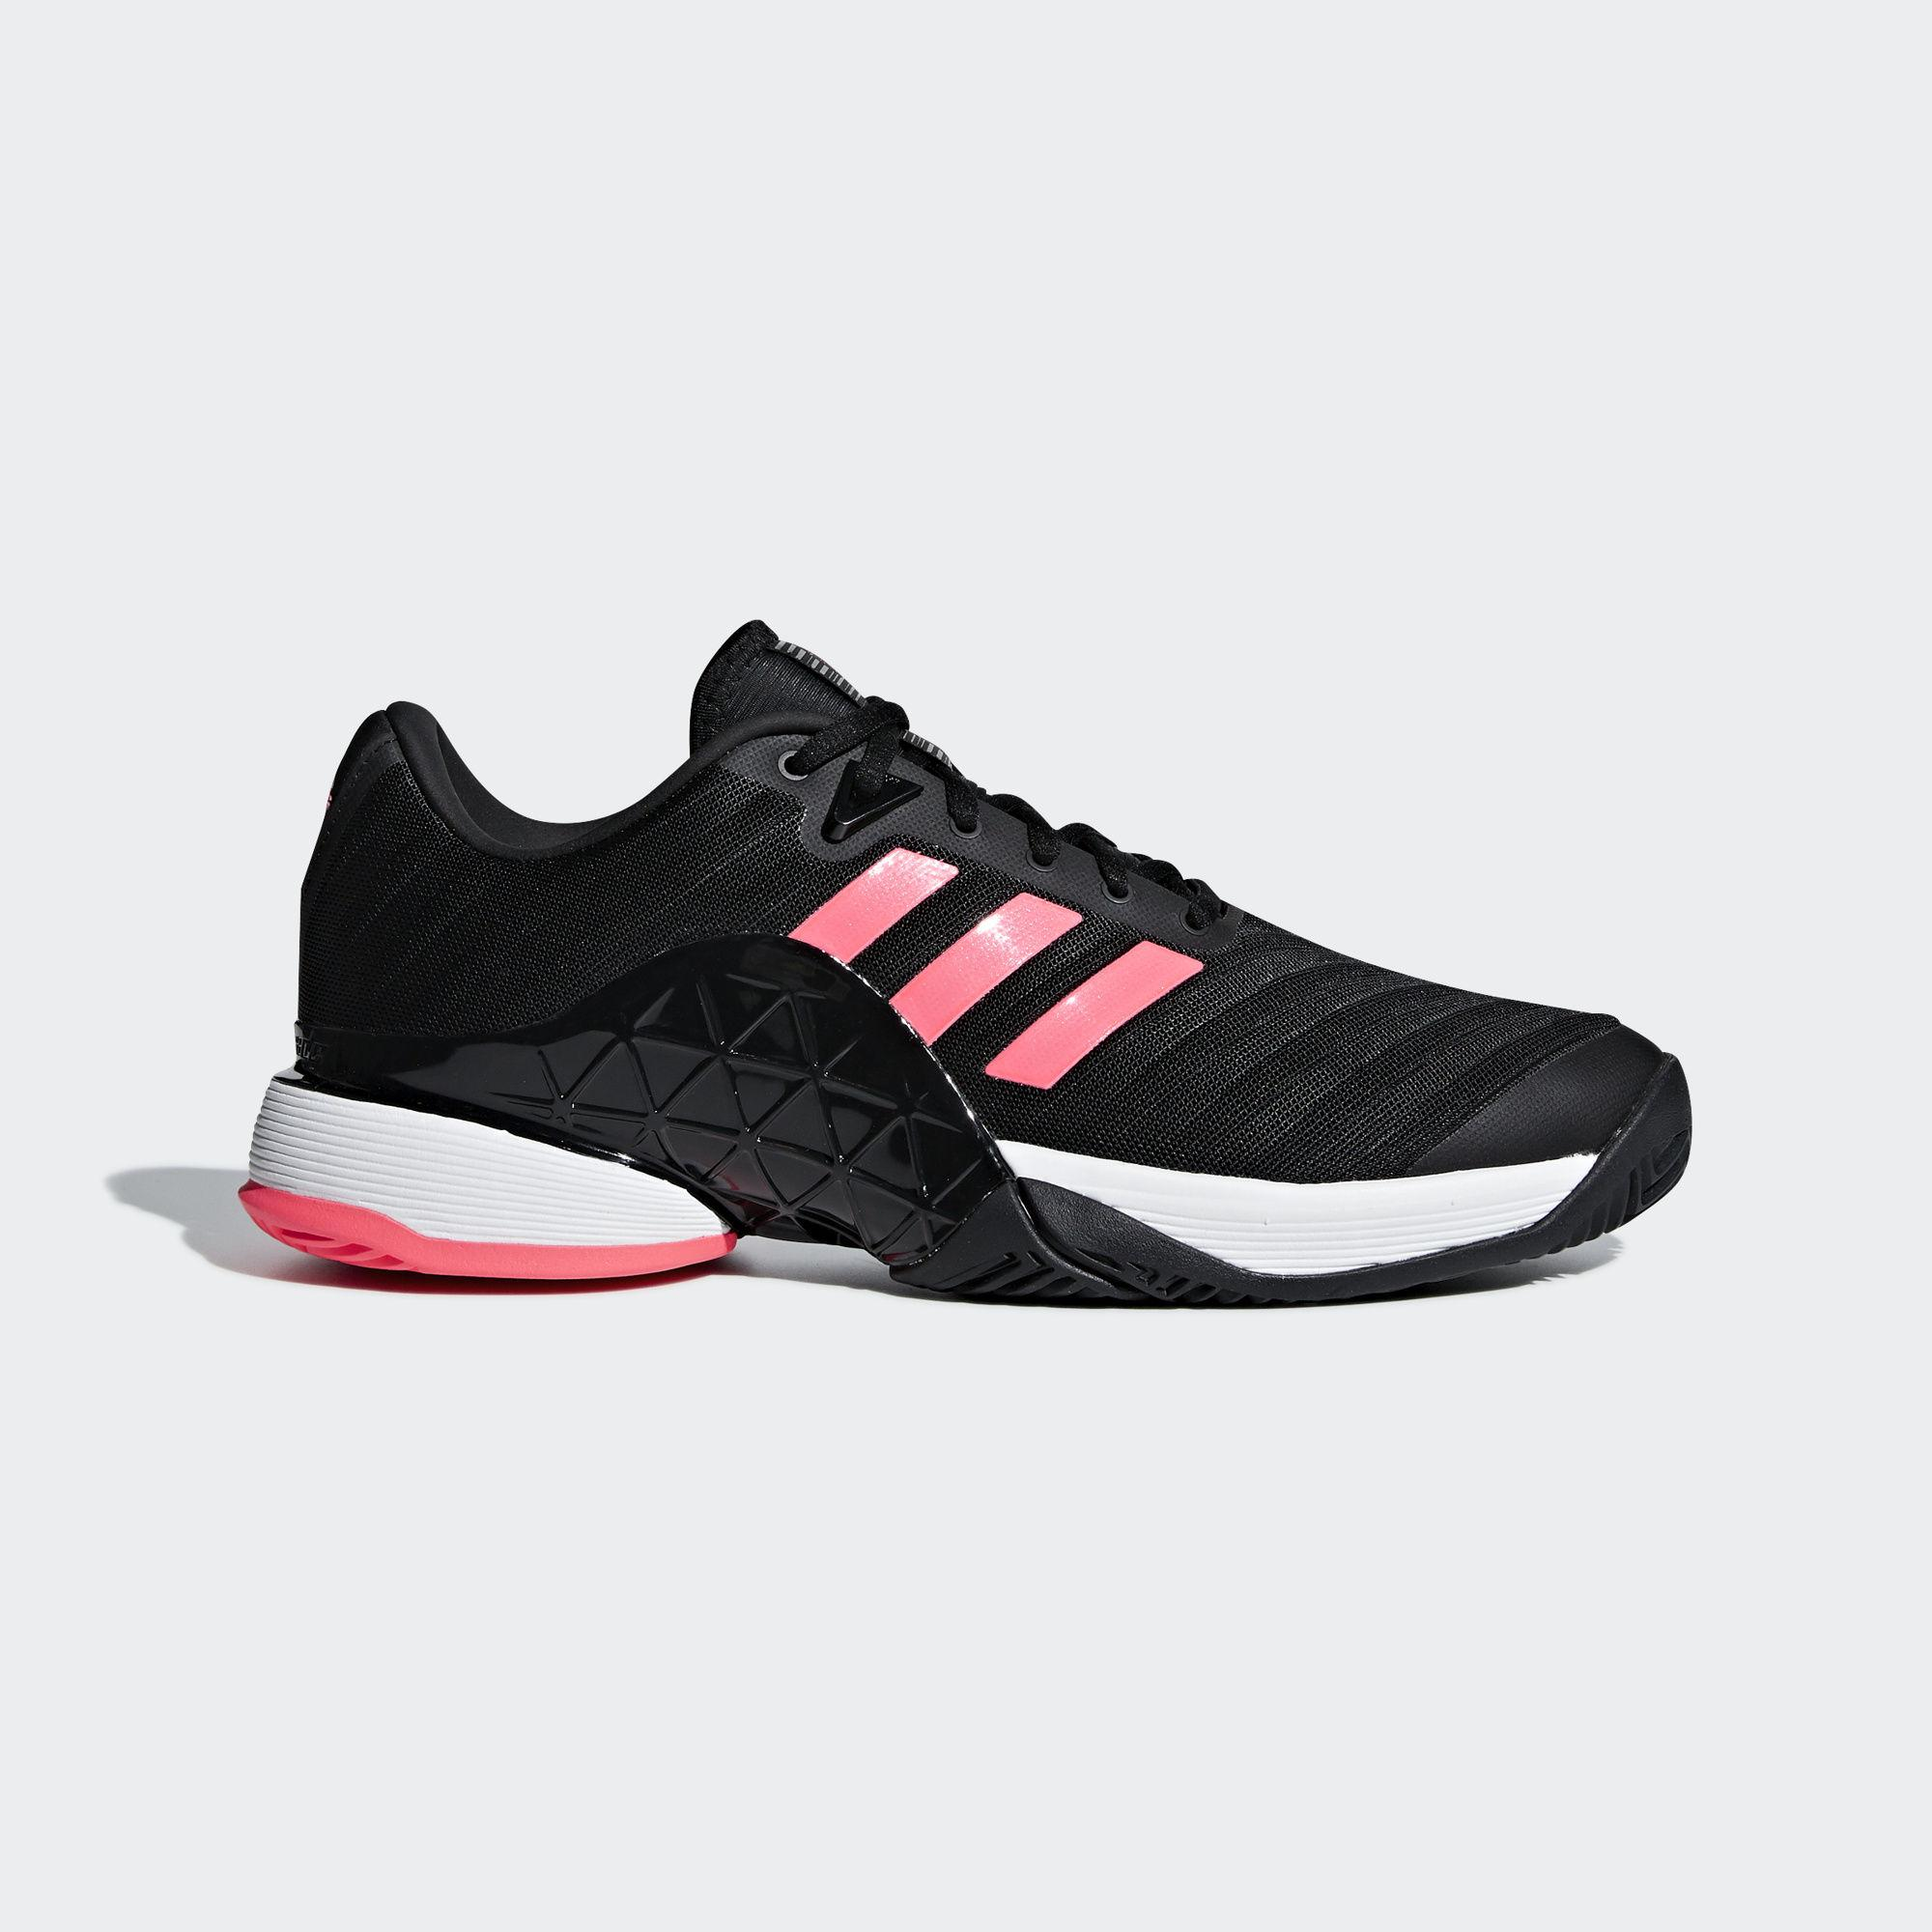 new product b2f86 ba766 ... best price adidas mens barricade 2018 tennis shoes black flash red  tennisnuts 88ca4 e7978